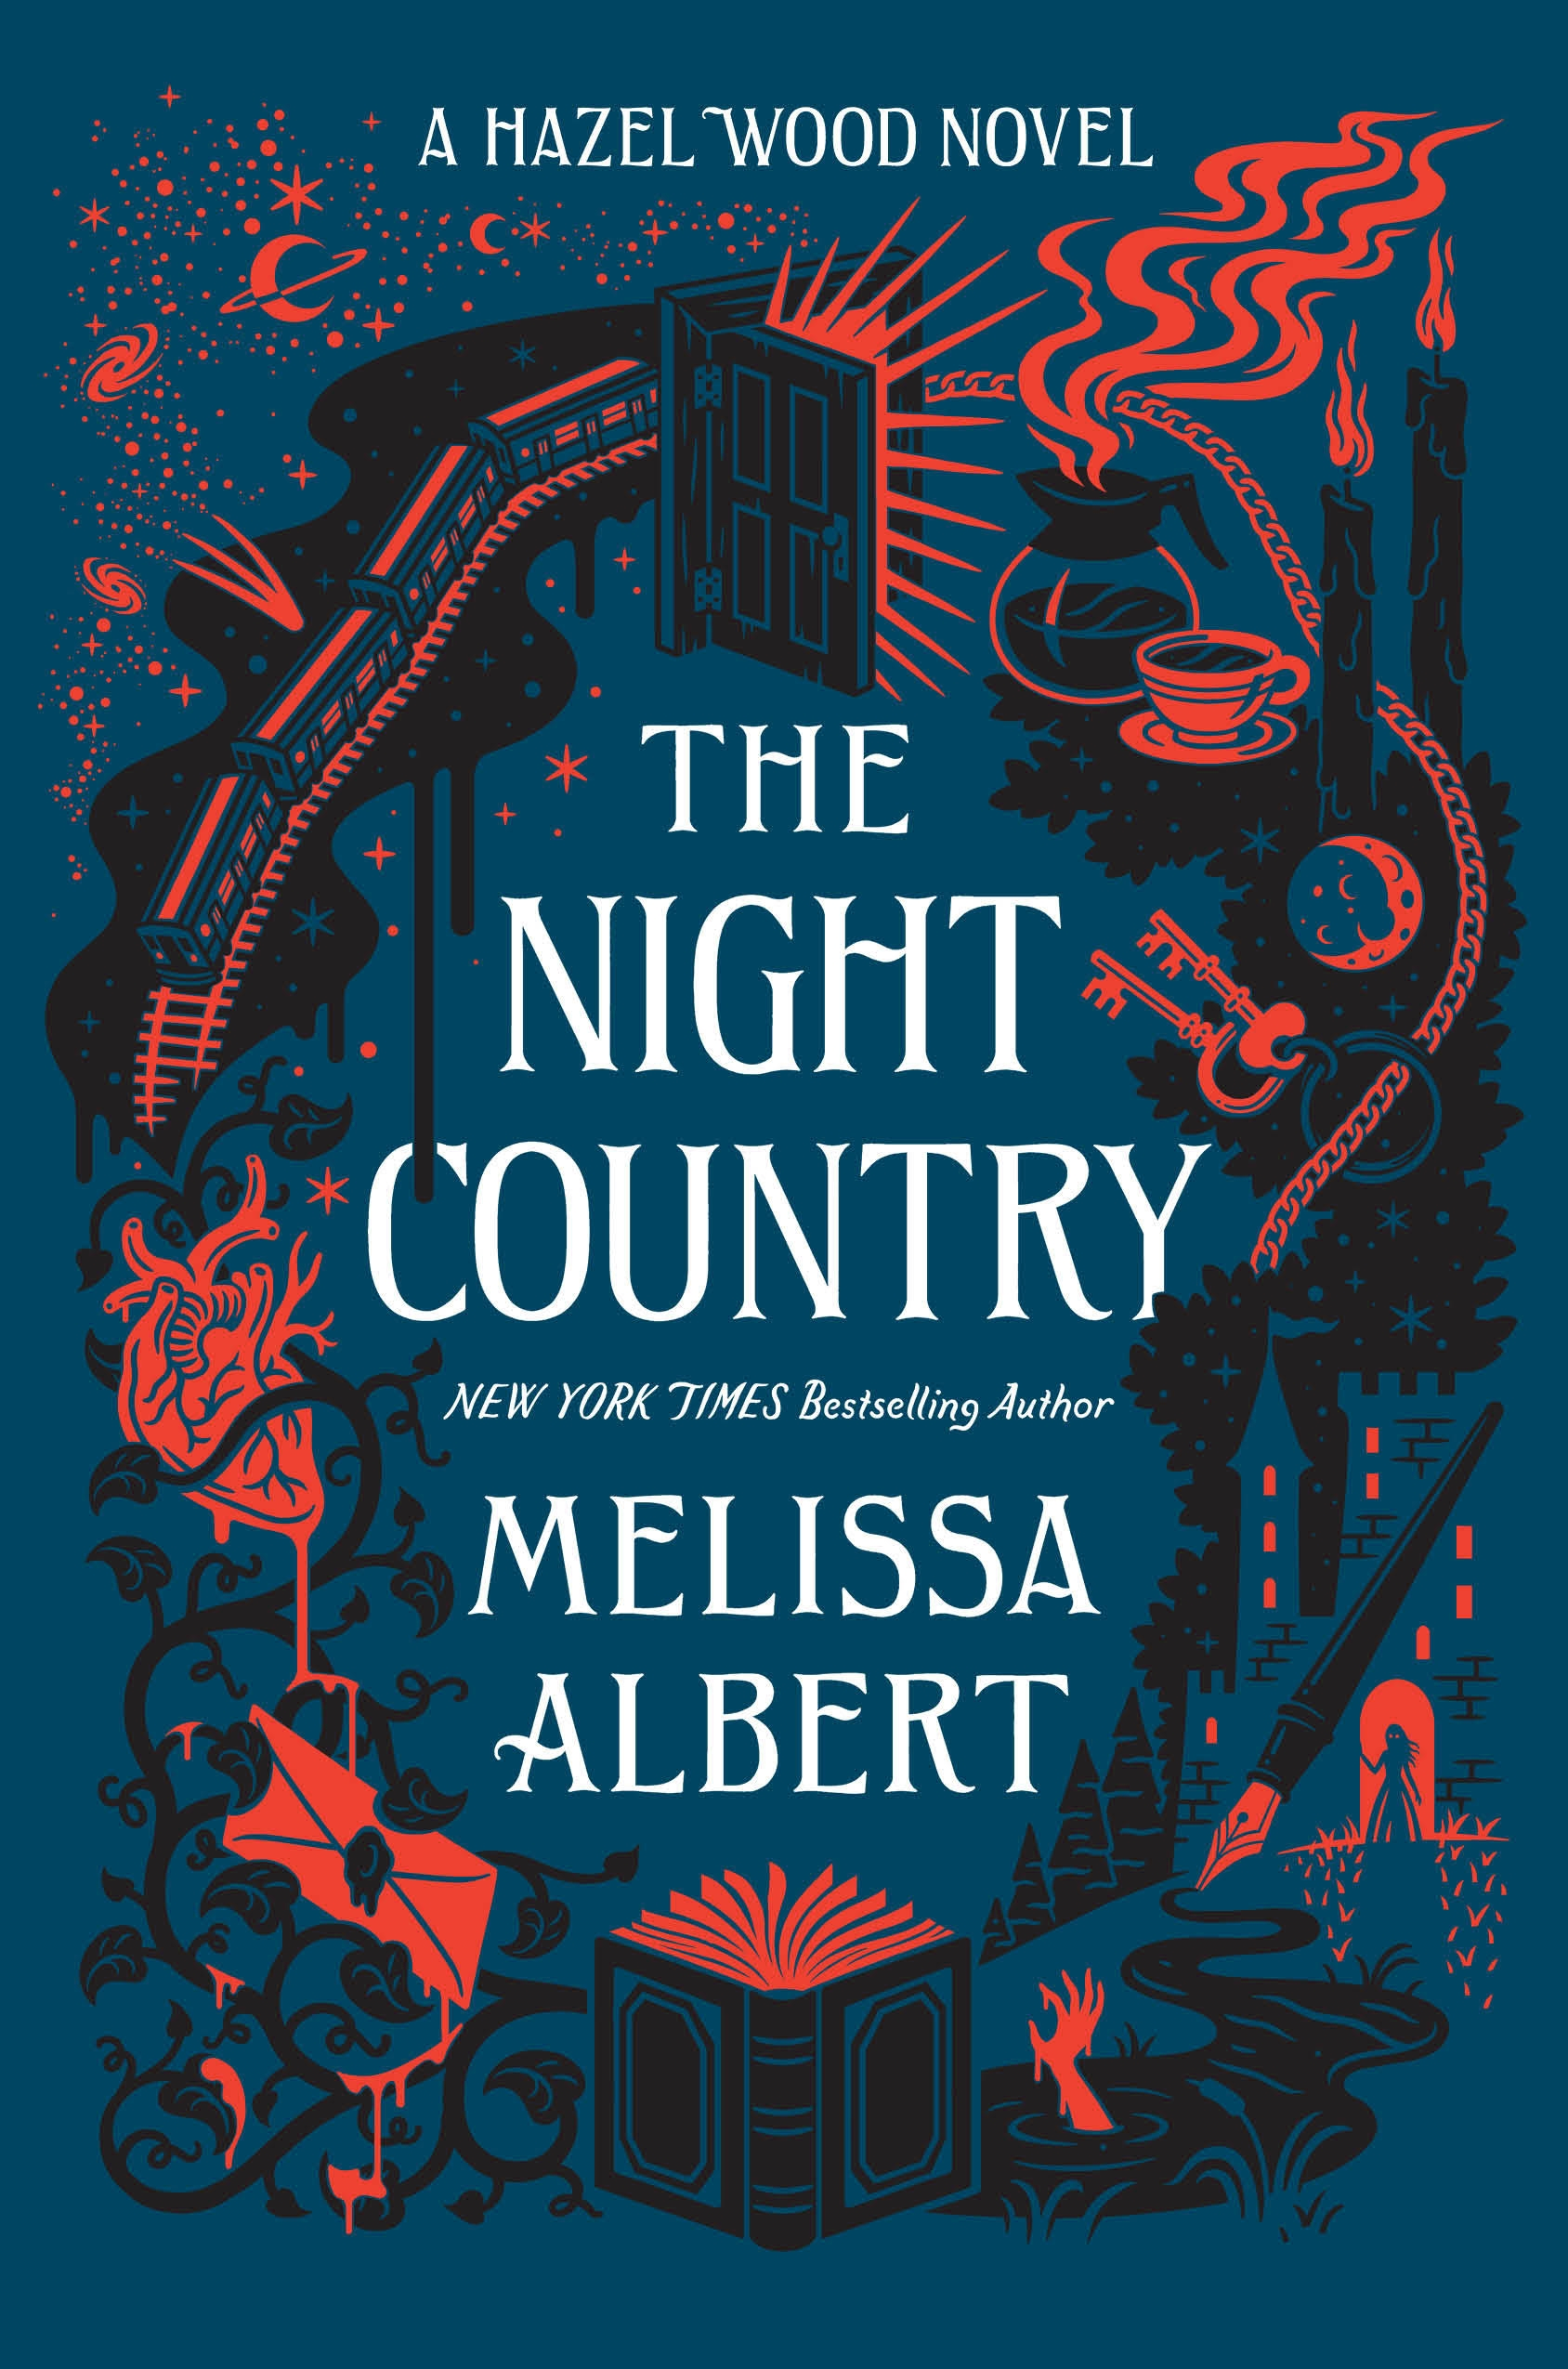 The Night Country [electronic resource] : A Hazel Wood Novel